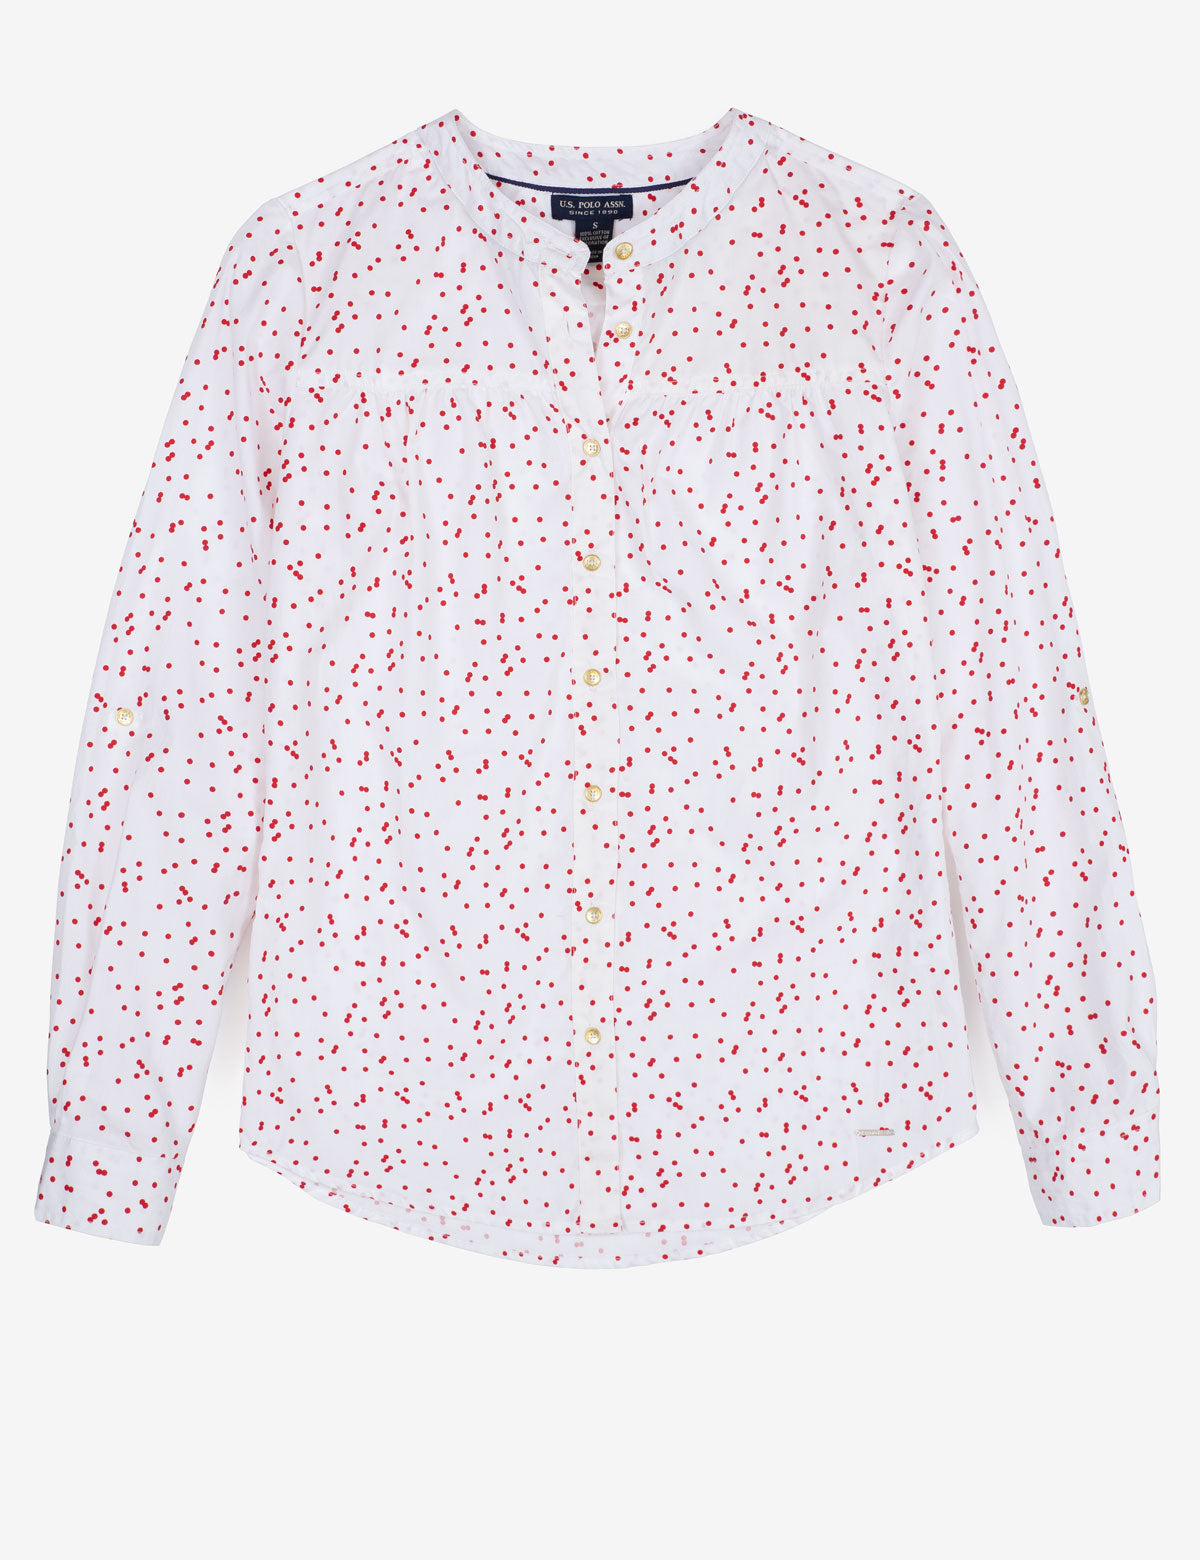 ALL OVER PRINT LONG SLEEVE SHIRT - U.S. Polo Assn.